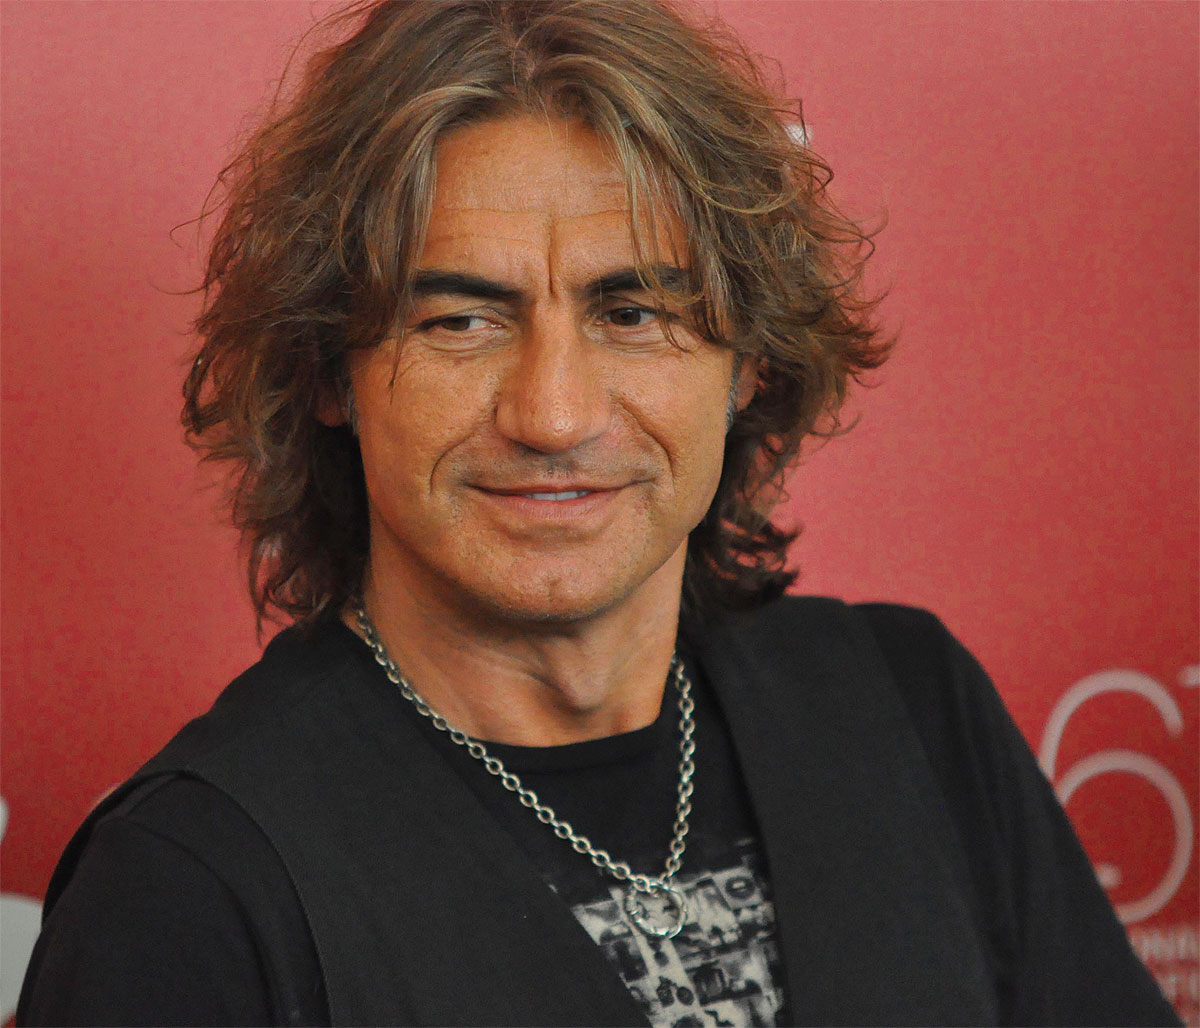 ligabue - photo #12